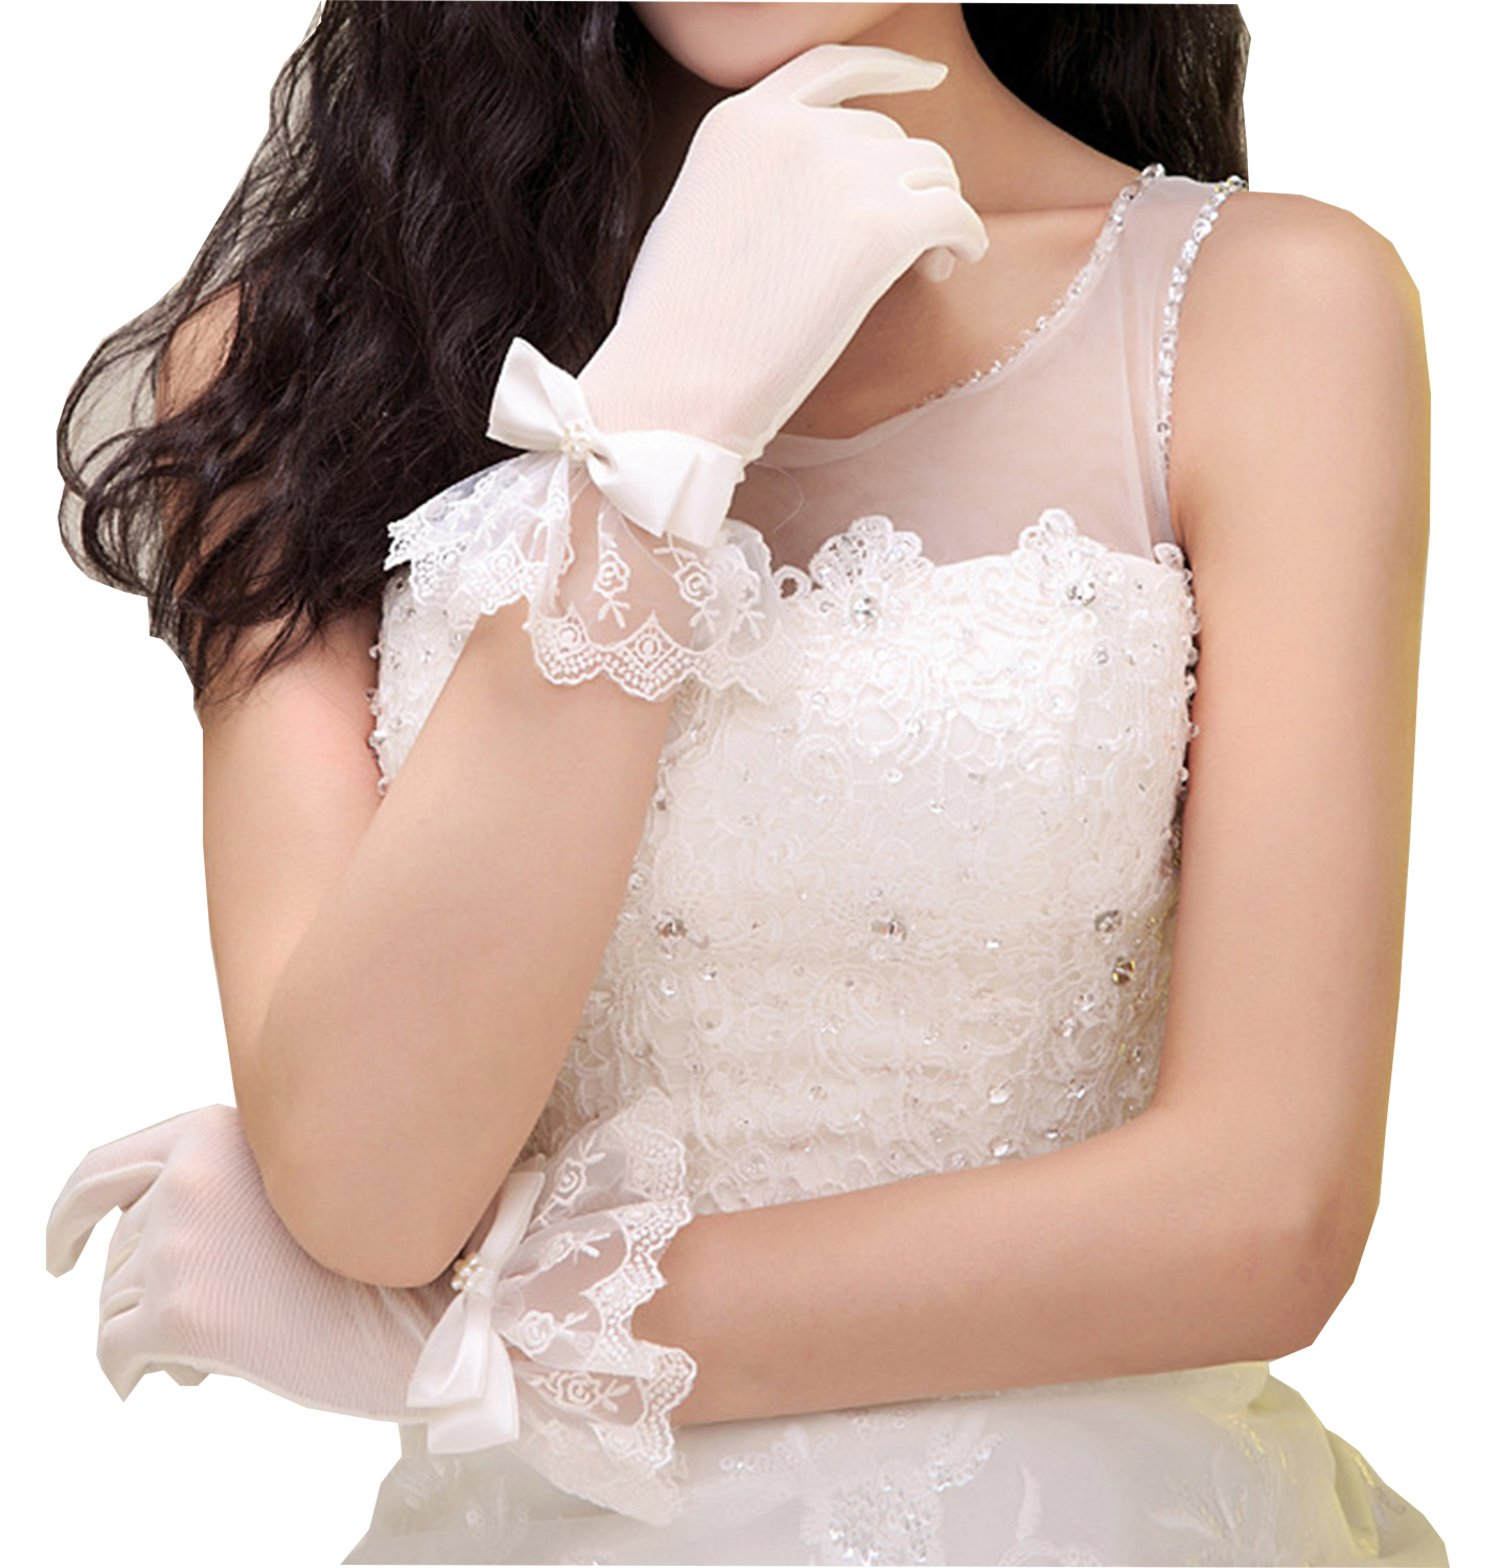 Gauss Kevin Lace Gloves UV Protection Wrist Length Prom Party Driving Wedding Gloves ShaH